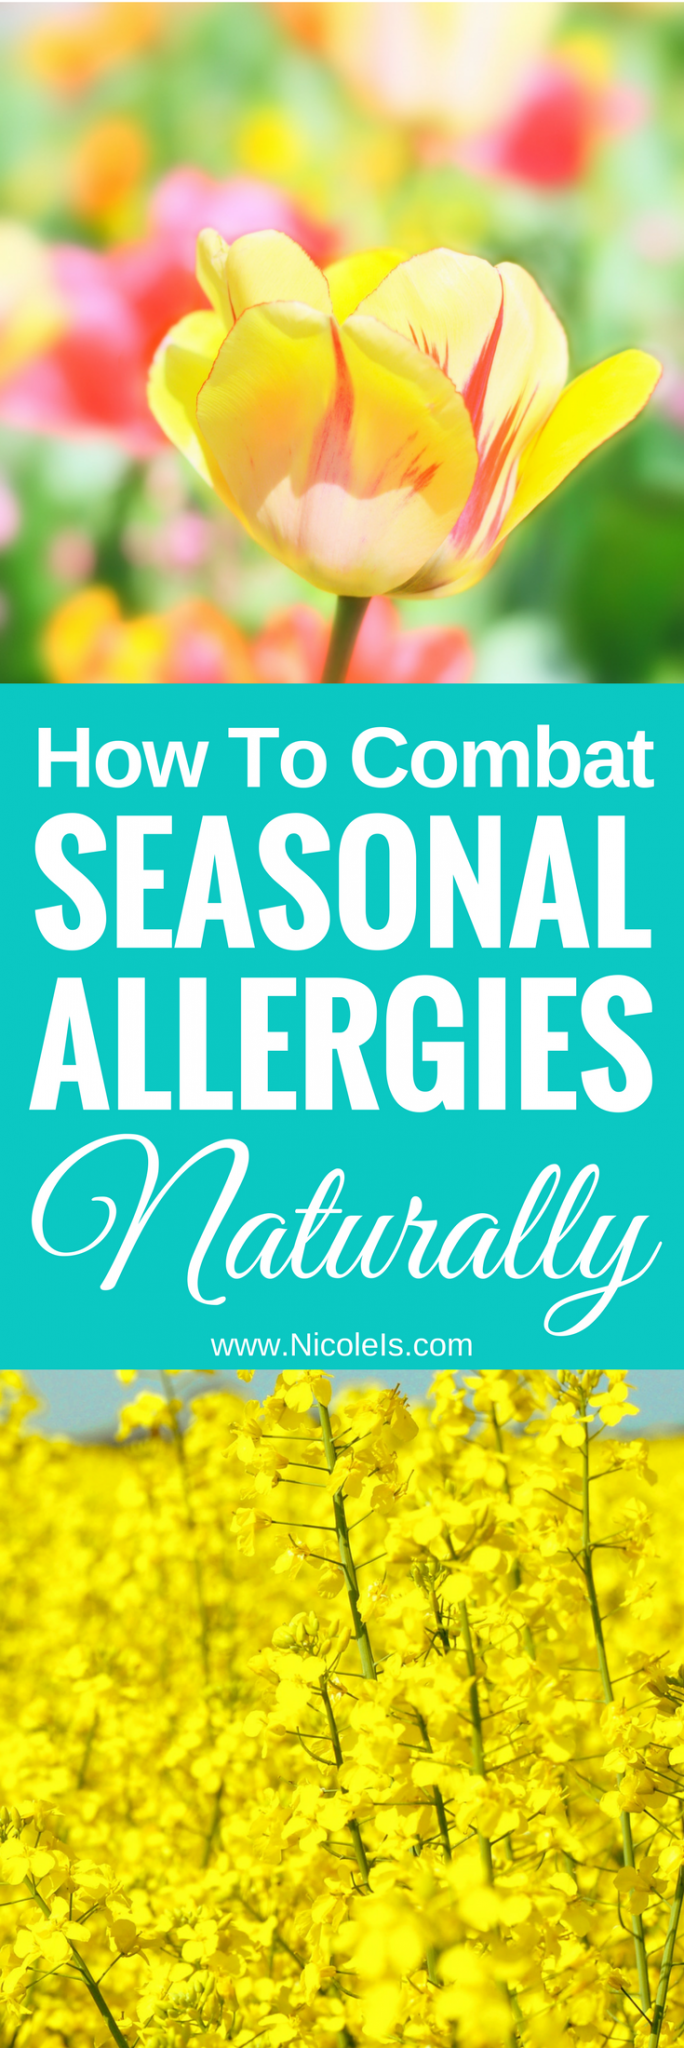 How to Combat Seasonal Allergies Naturally | Nicole Is ... El Natural | www.NicoleIs.com | Seasonal Allergies | Holistic Remedies | Home Remedies | Allergy Relief | All Natural Remedies | Spring Allergies | Hay Fever | Natural Allergy Remedies